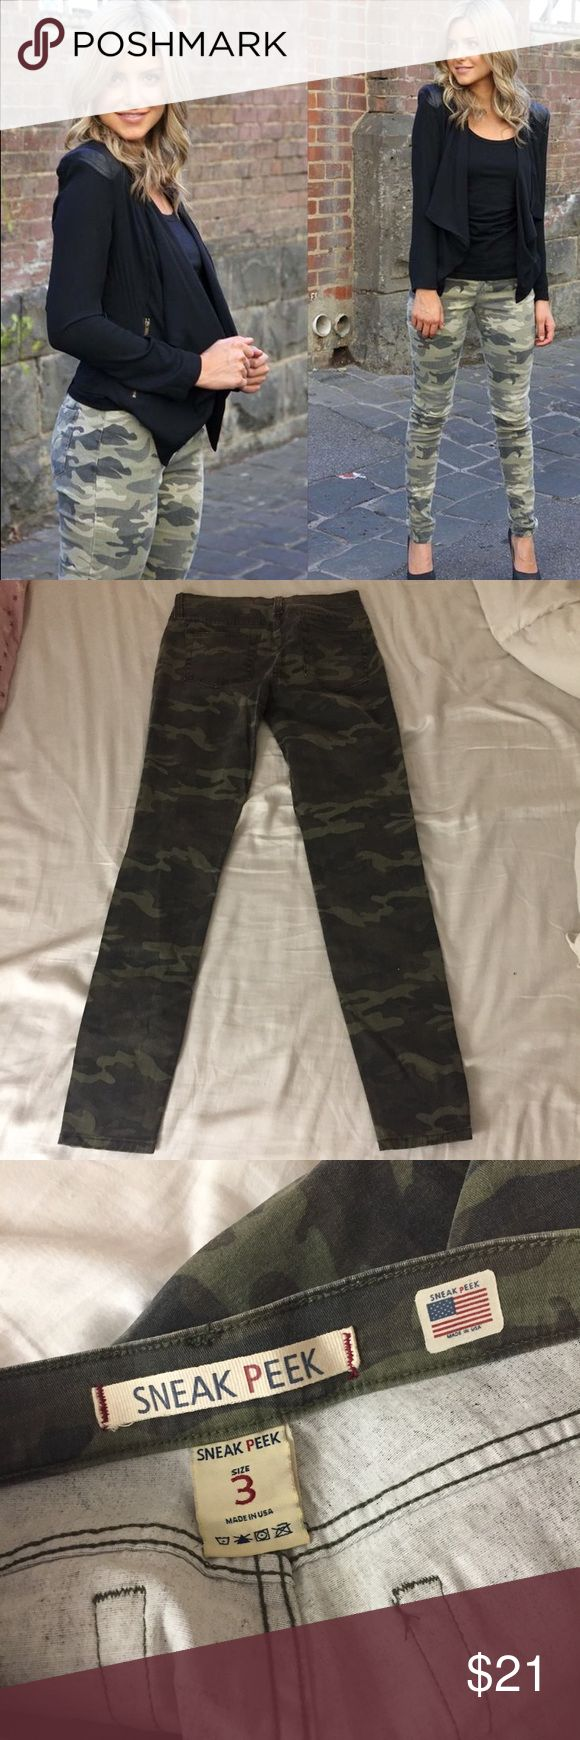 Like new camo sneak peak skinny jeans-3 Only worn once for pictures.  Sneak peak camo skinny jeans size 3.  First pic is the same style jeans but in a lighter color. Vanity Jeans Skinny